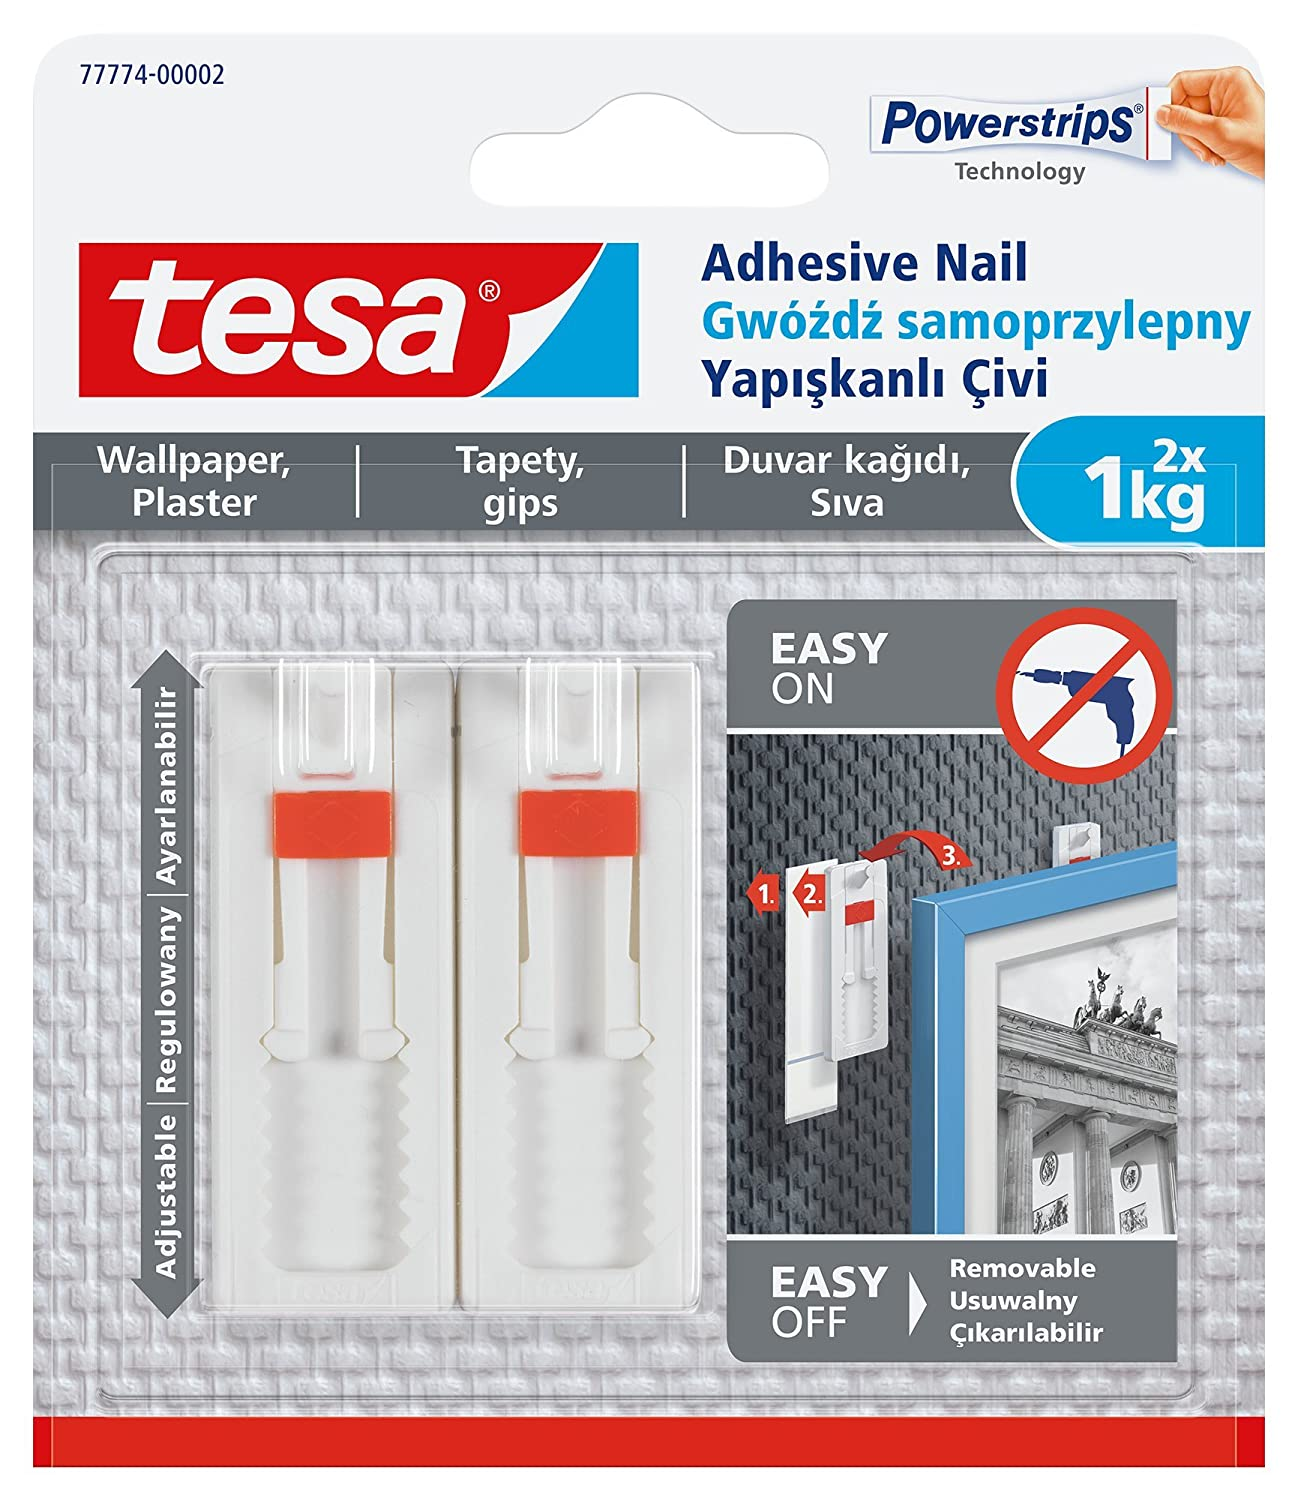 Tesa 77774  –   00002  –   00  extraí ble ajustable adhesivo uñ as para colgar fotos en papel pintado, color blanco tesa UK 77774-00002-00